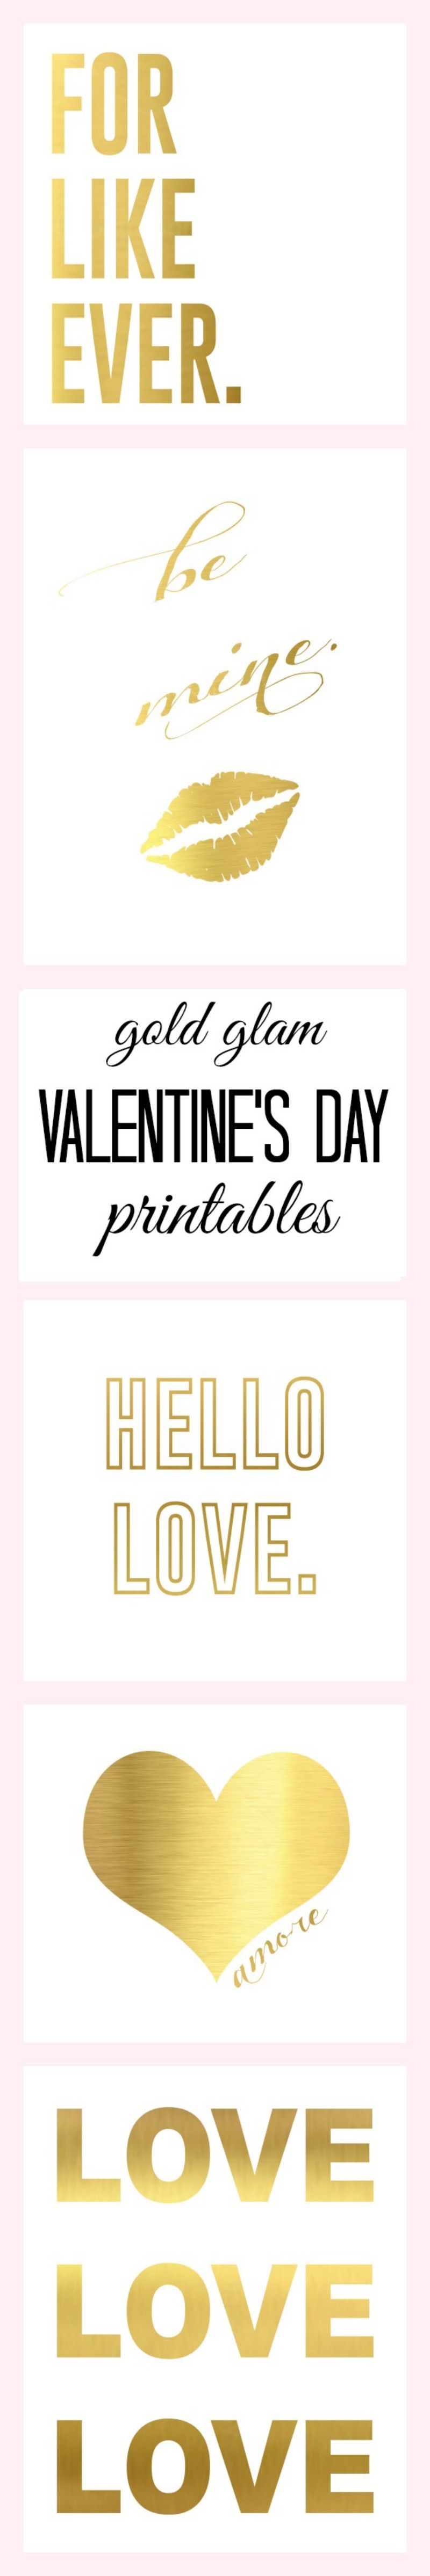 these valentines day printables are adorable they are so fun and cute they make decorating for valentines easy click for your free printable